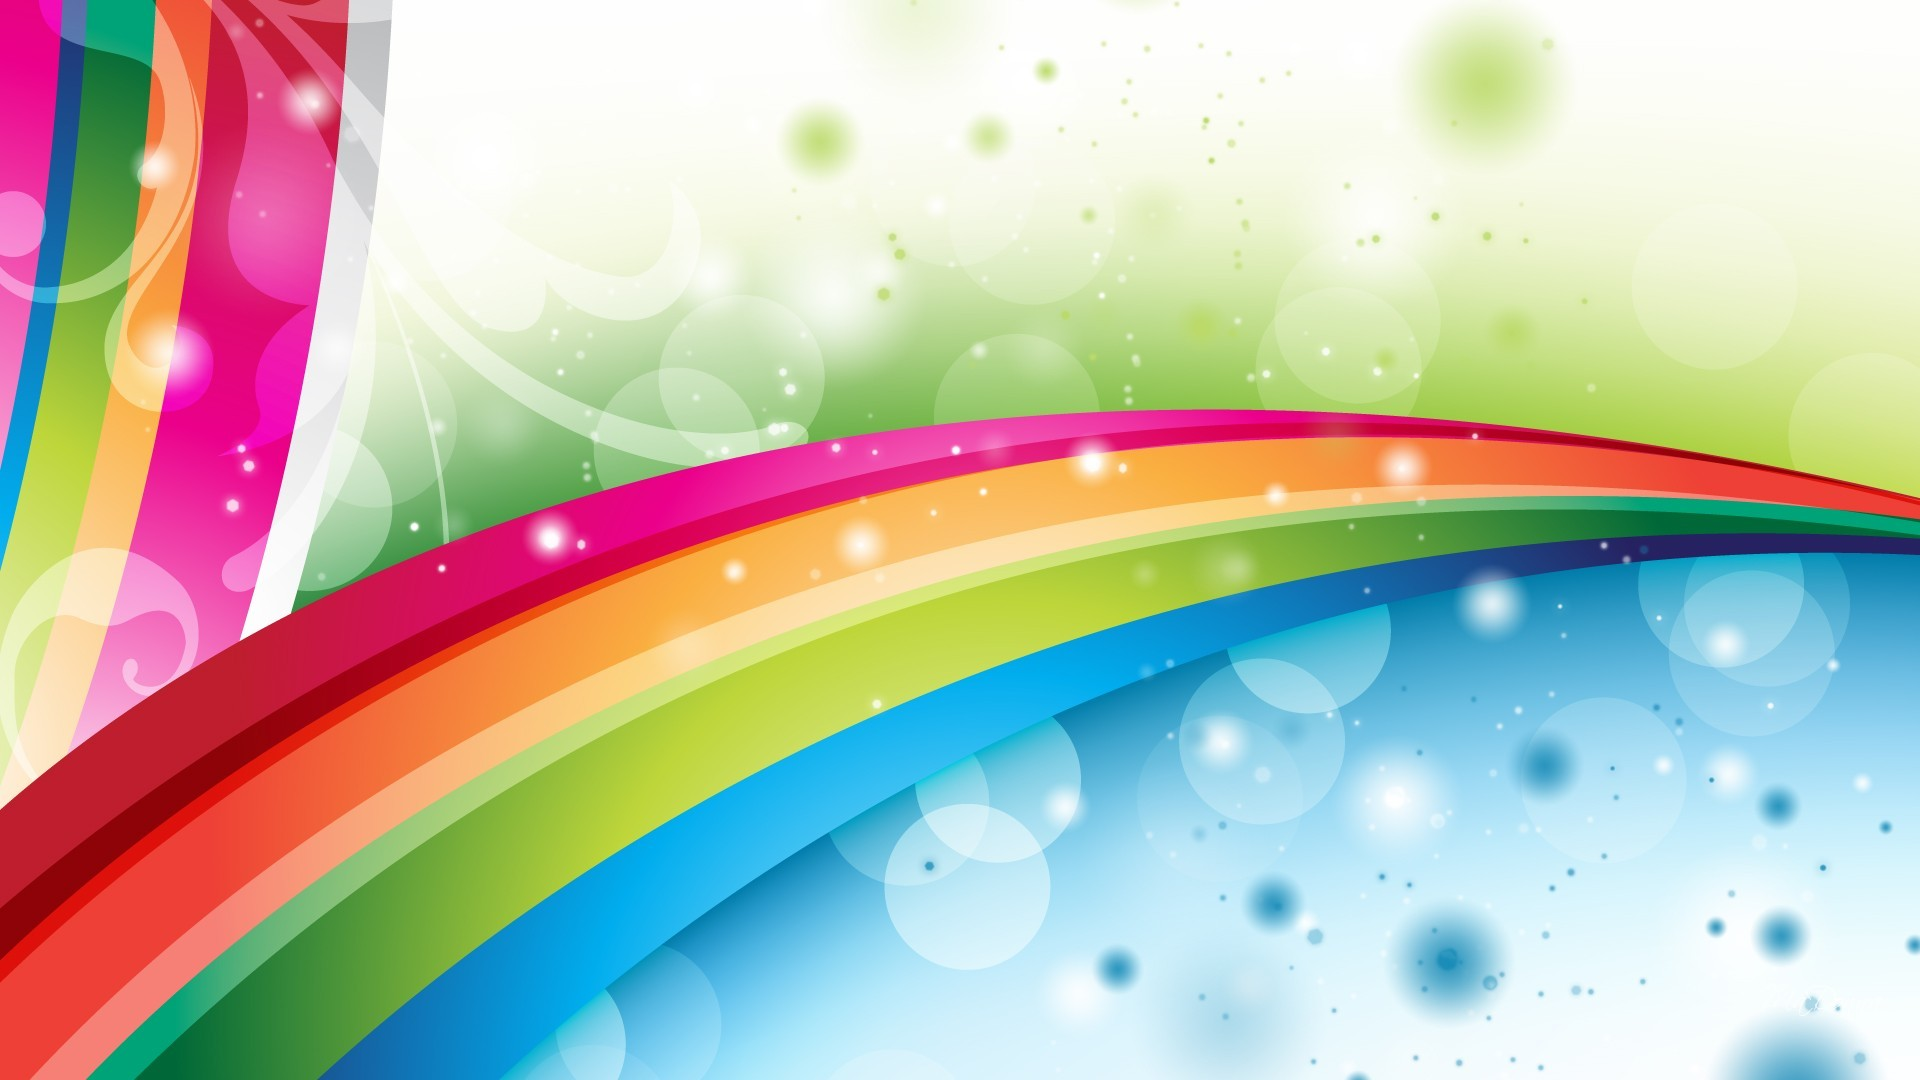 1920x1080 Rainbow Wallpaper 876741 Rainbow Wallpaper 876786 Rainbow Wallpaper